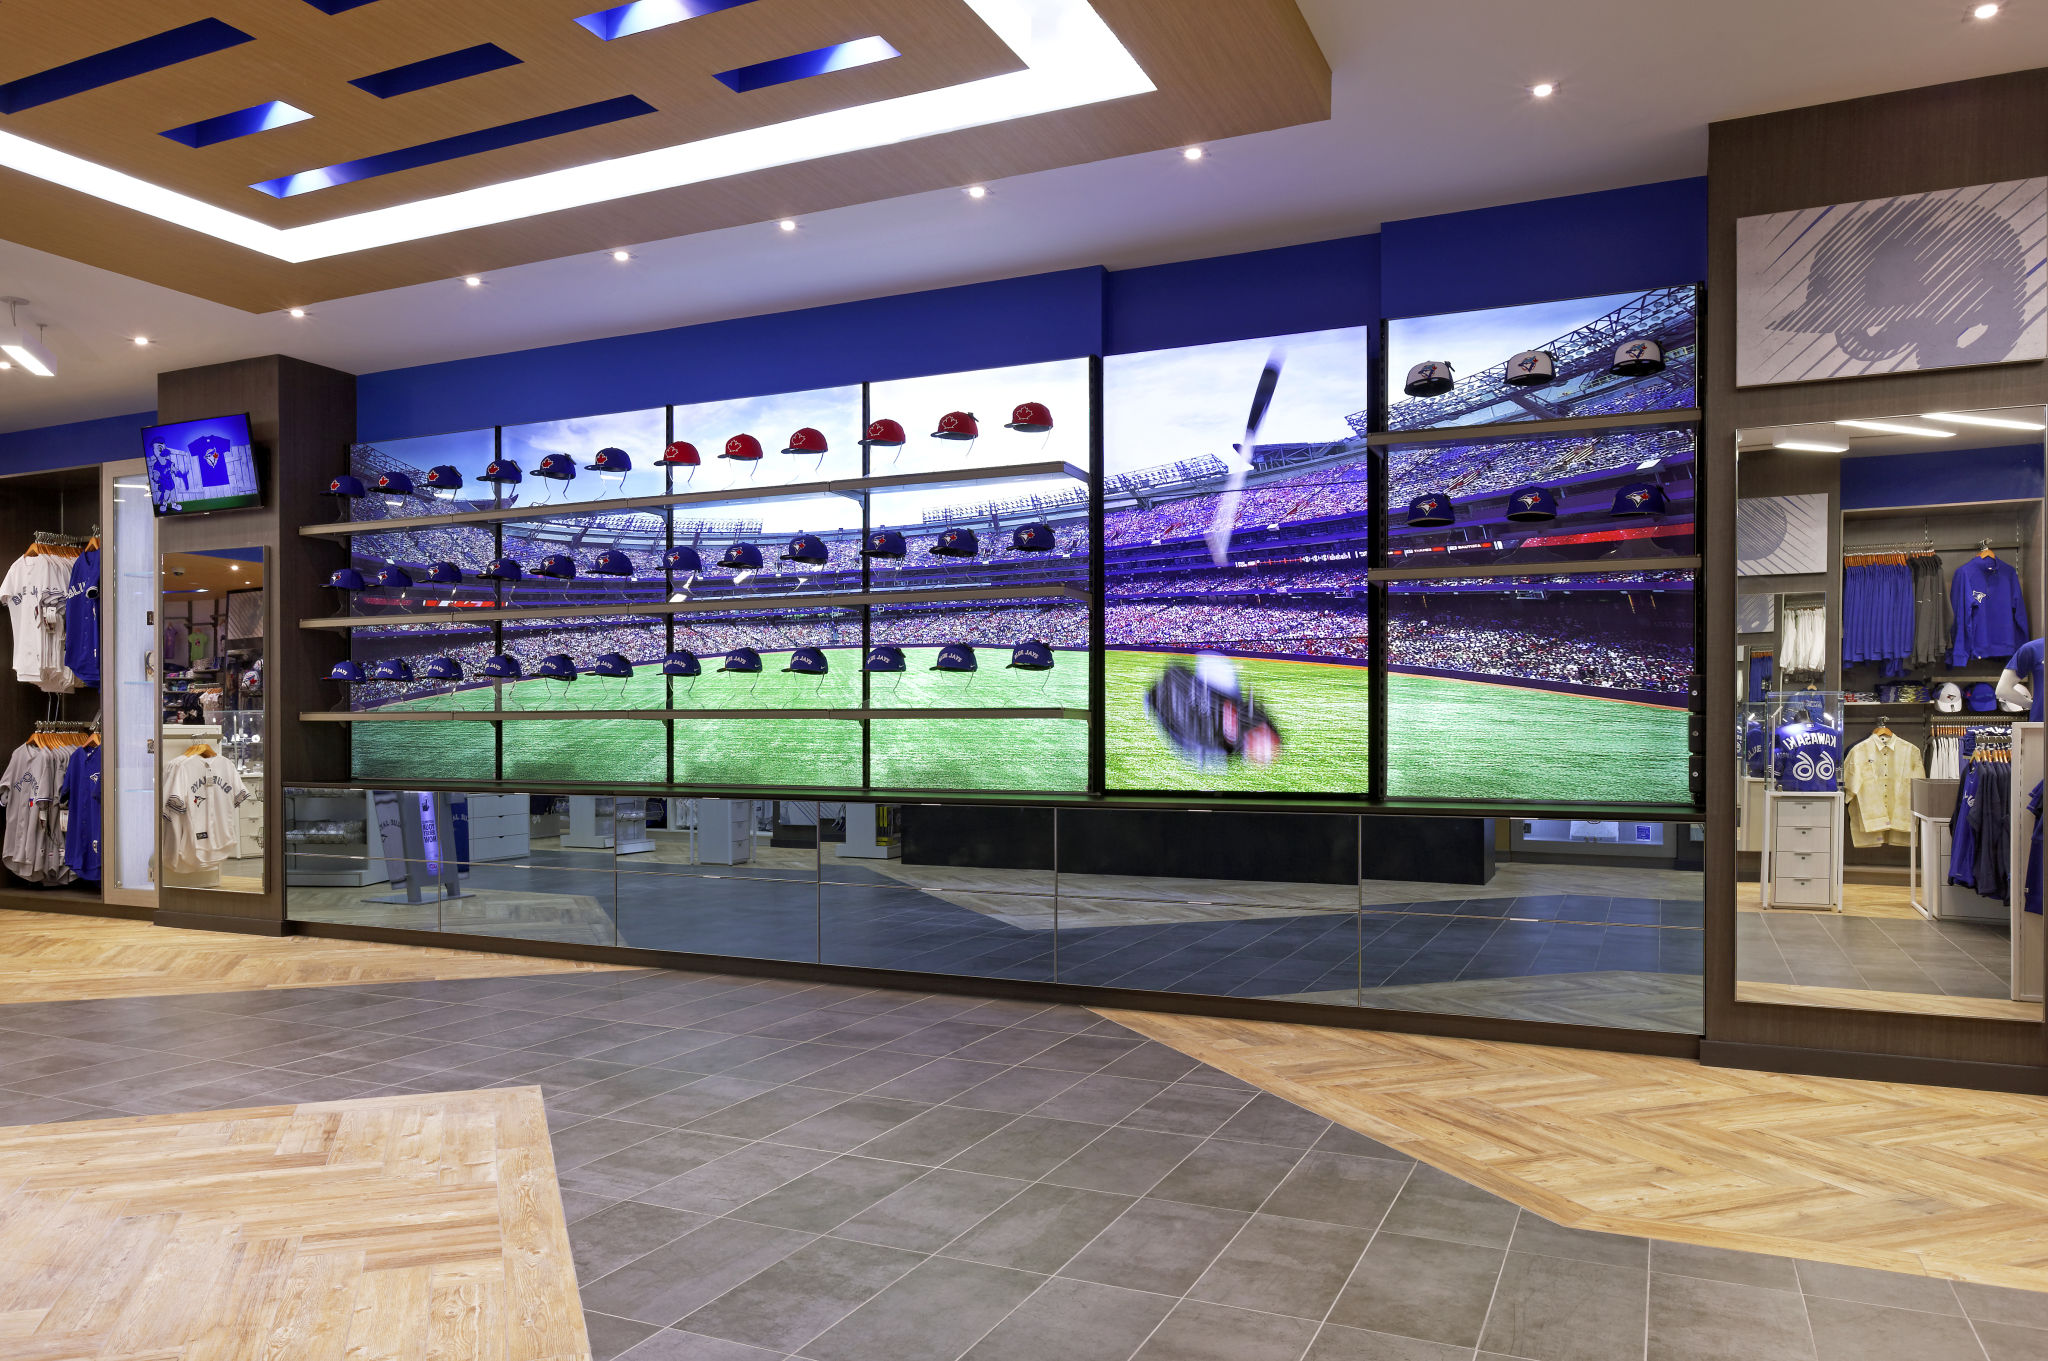 Retail design goes digital for latest jays shop sign media for Retail store design software